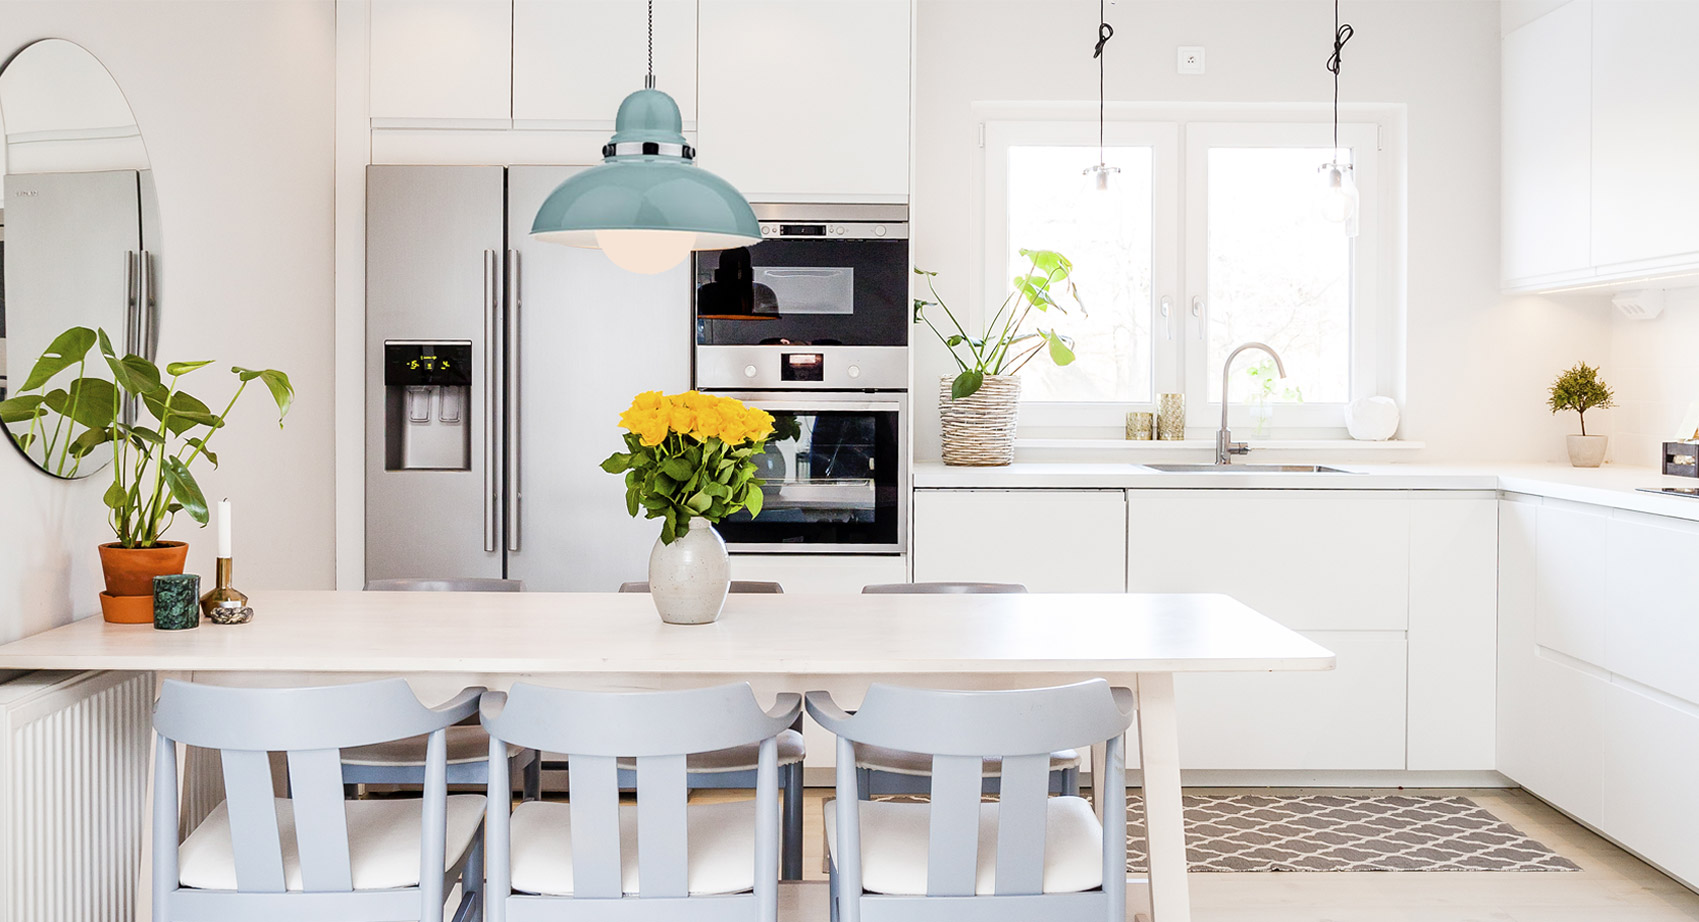 Pendant Light in a kitchen